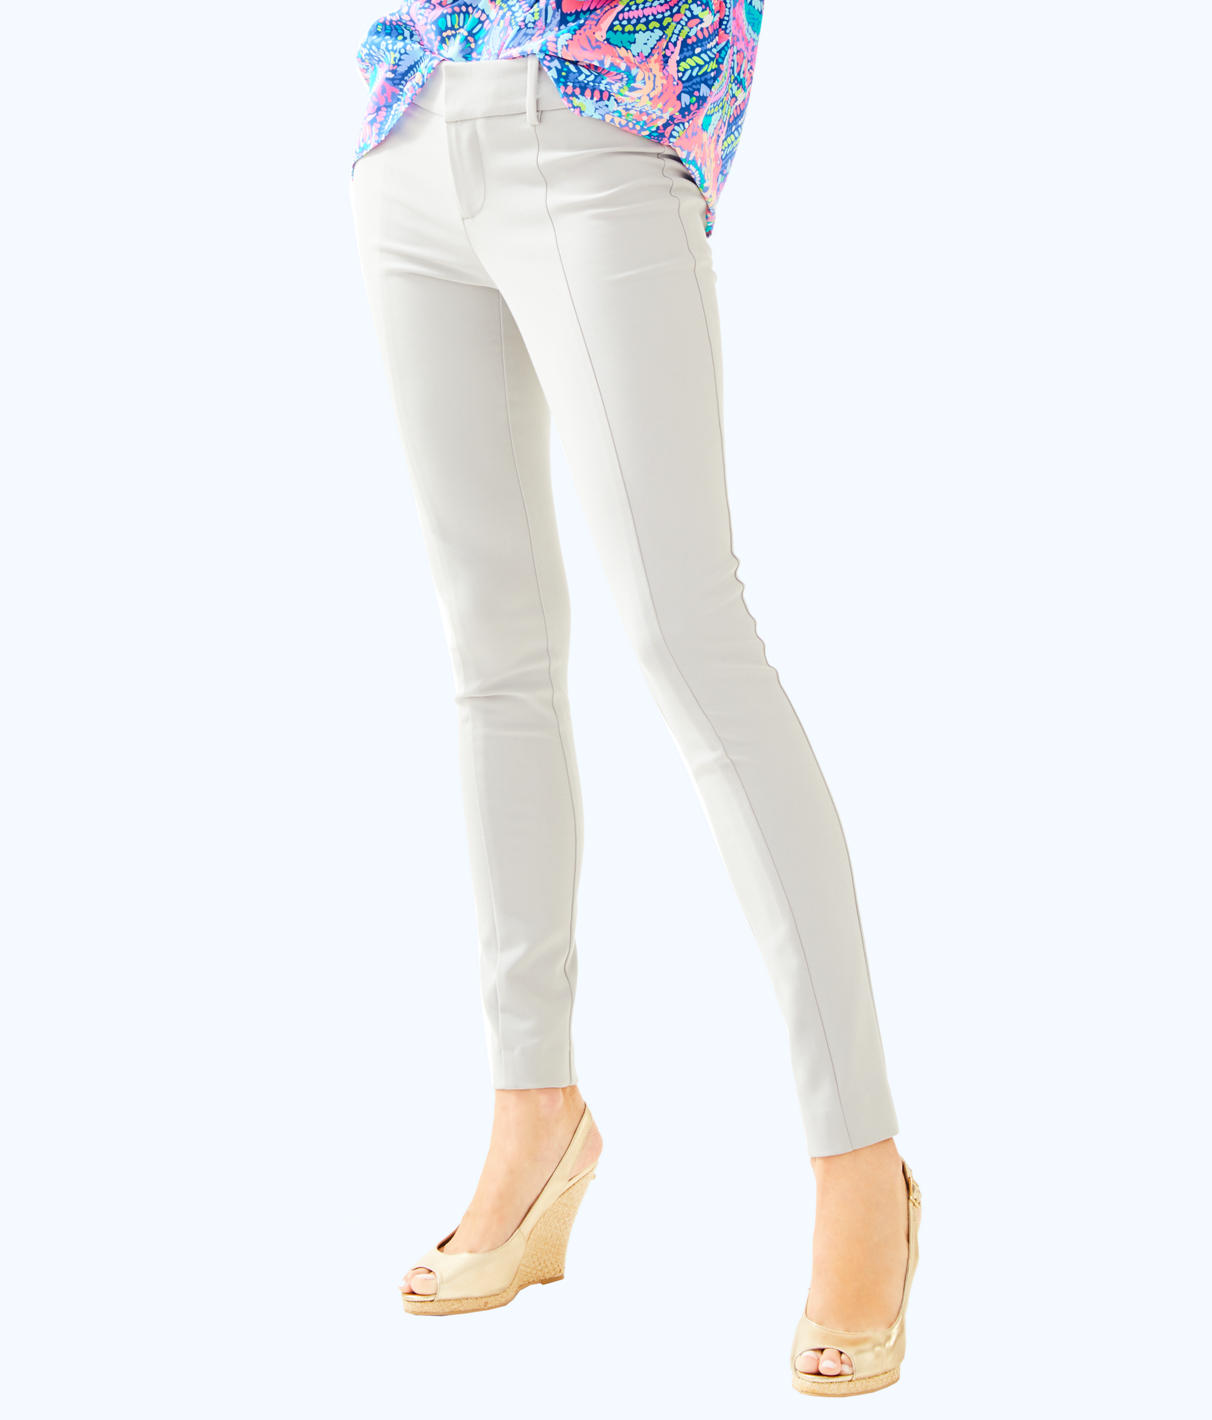 Lilly Pulitzer Lilly Pulitzer Womens 30